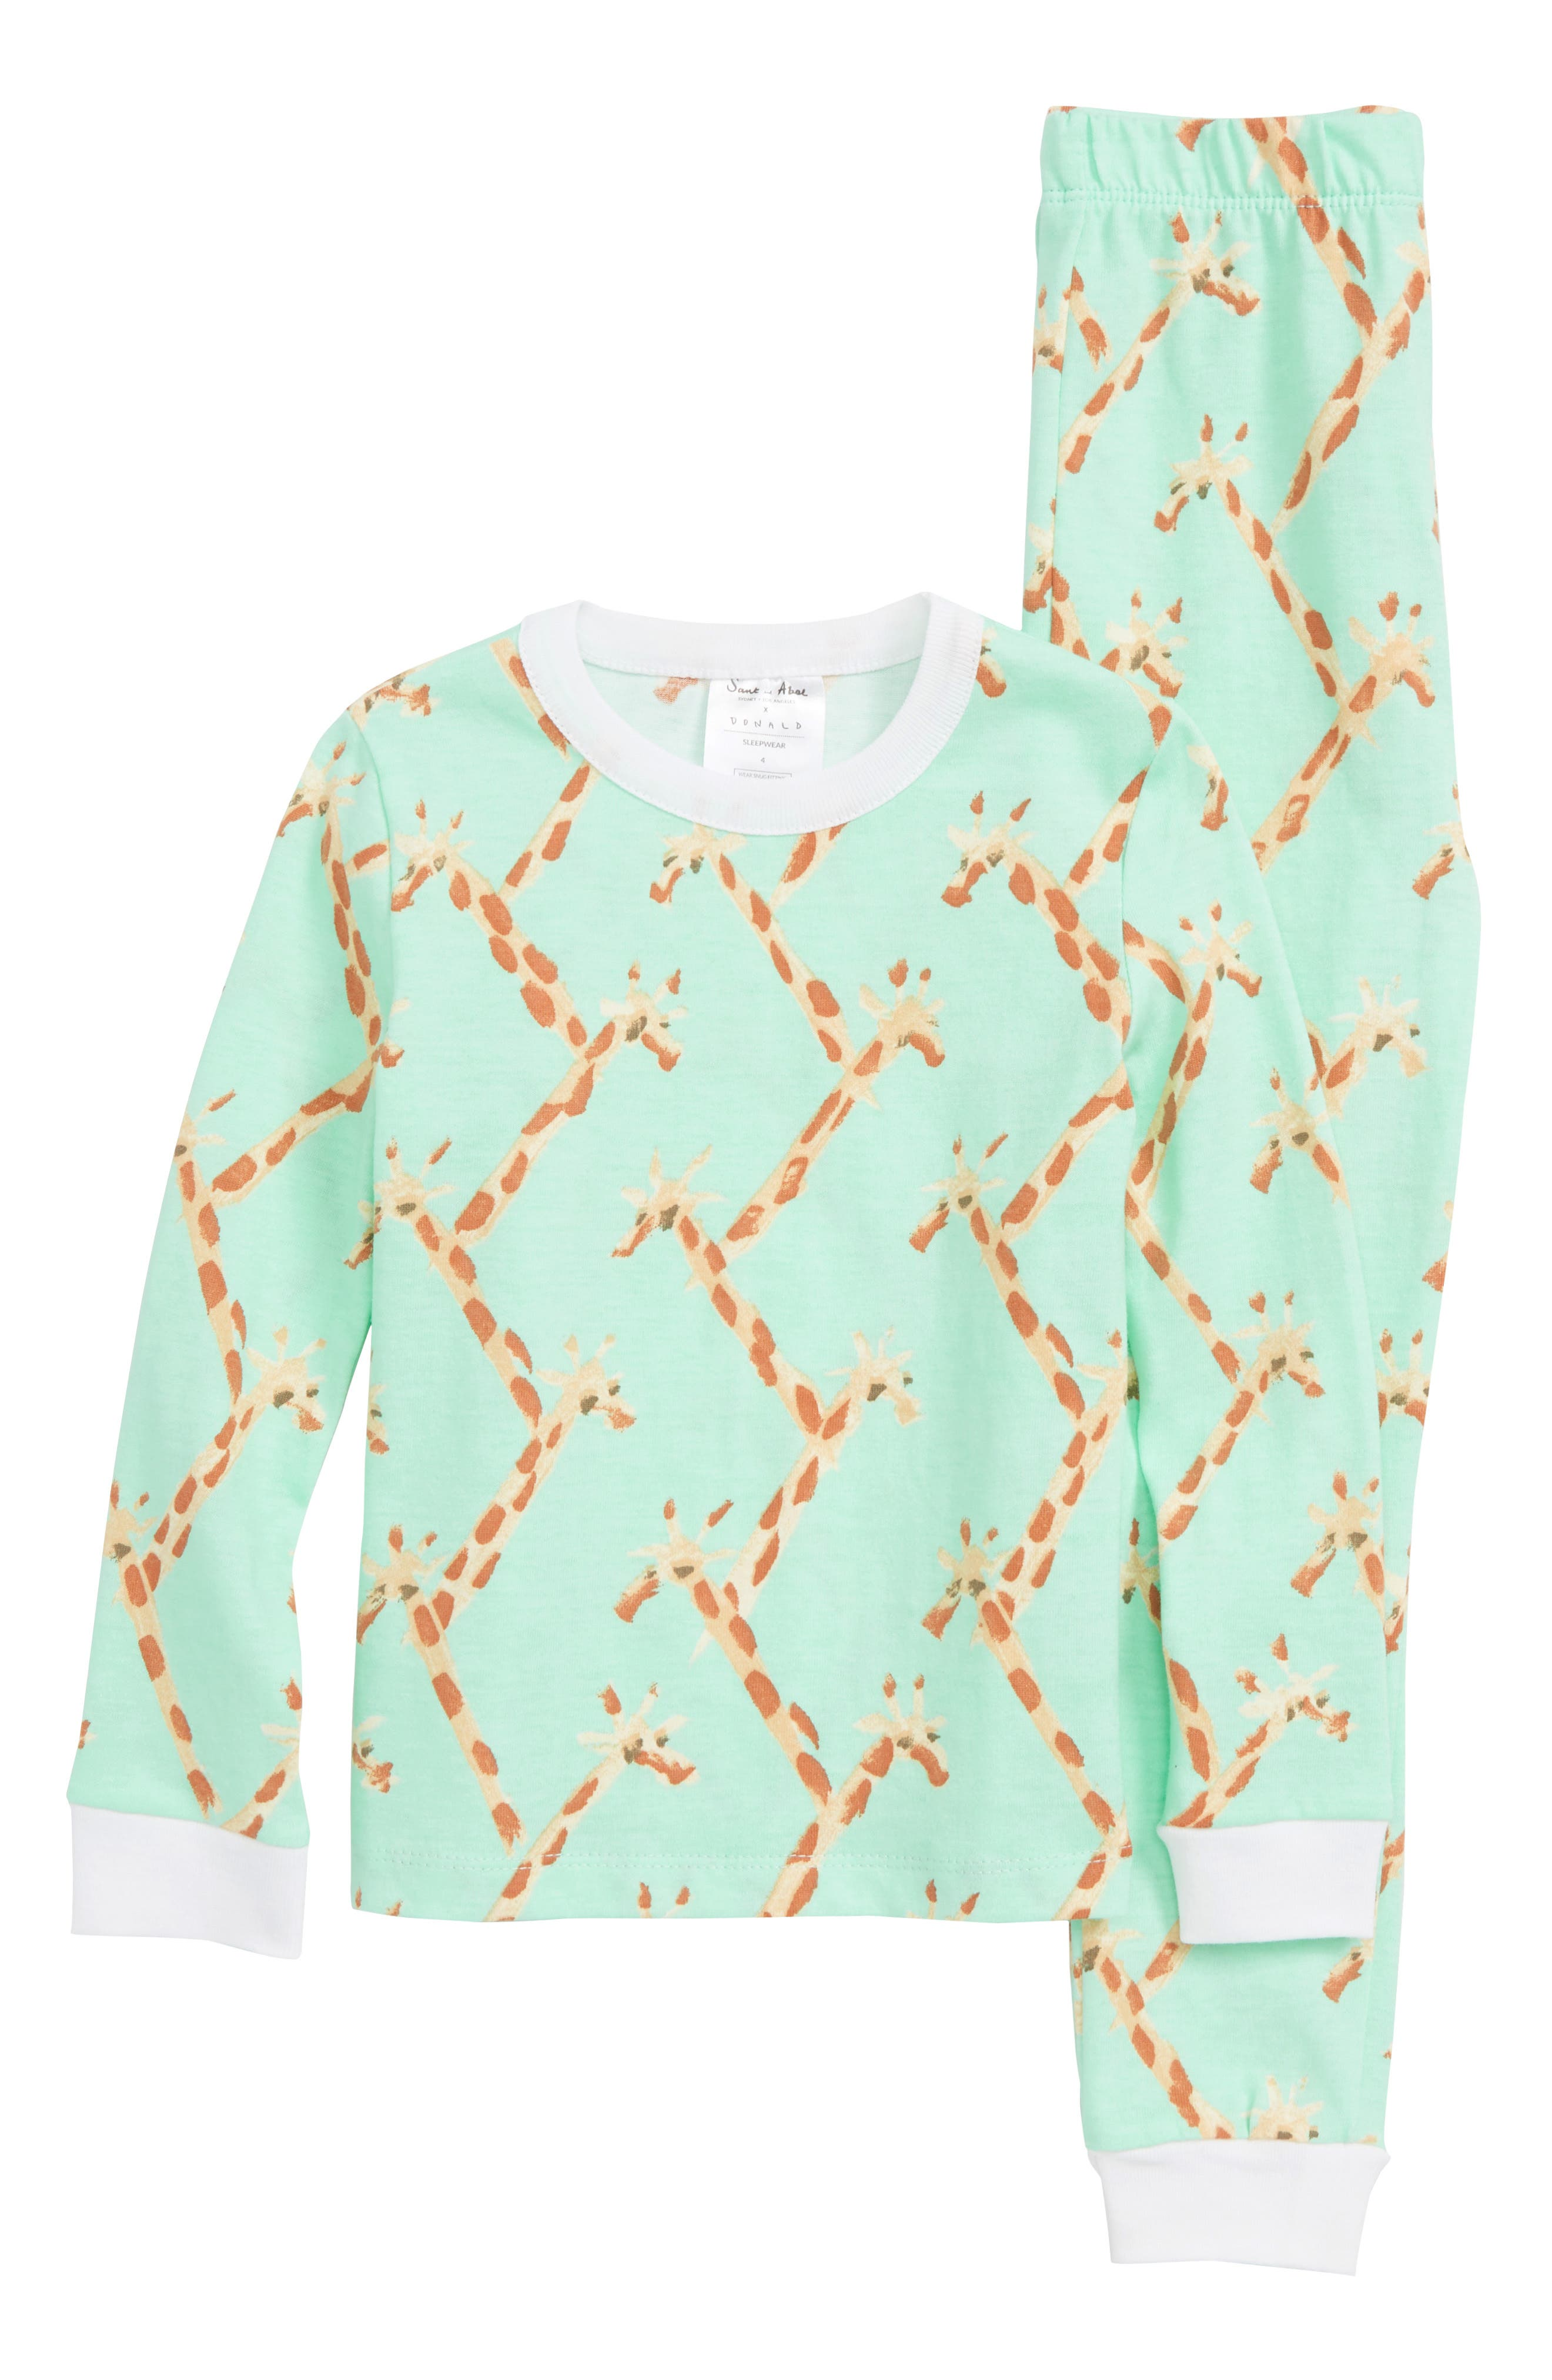 x Donald Robertson Giraffe Fitted Two-Piece Pajamas, Main, color, 300